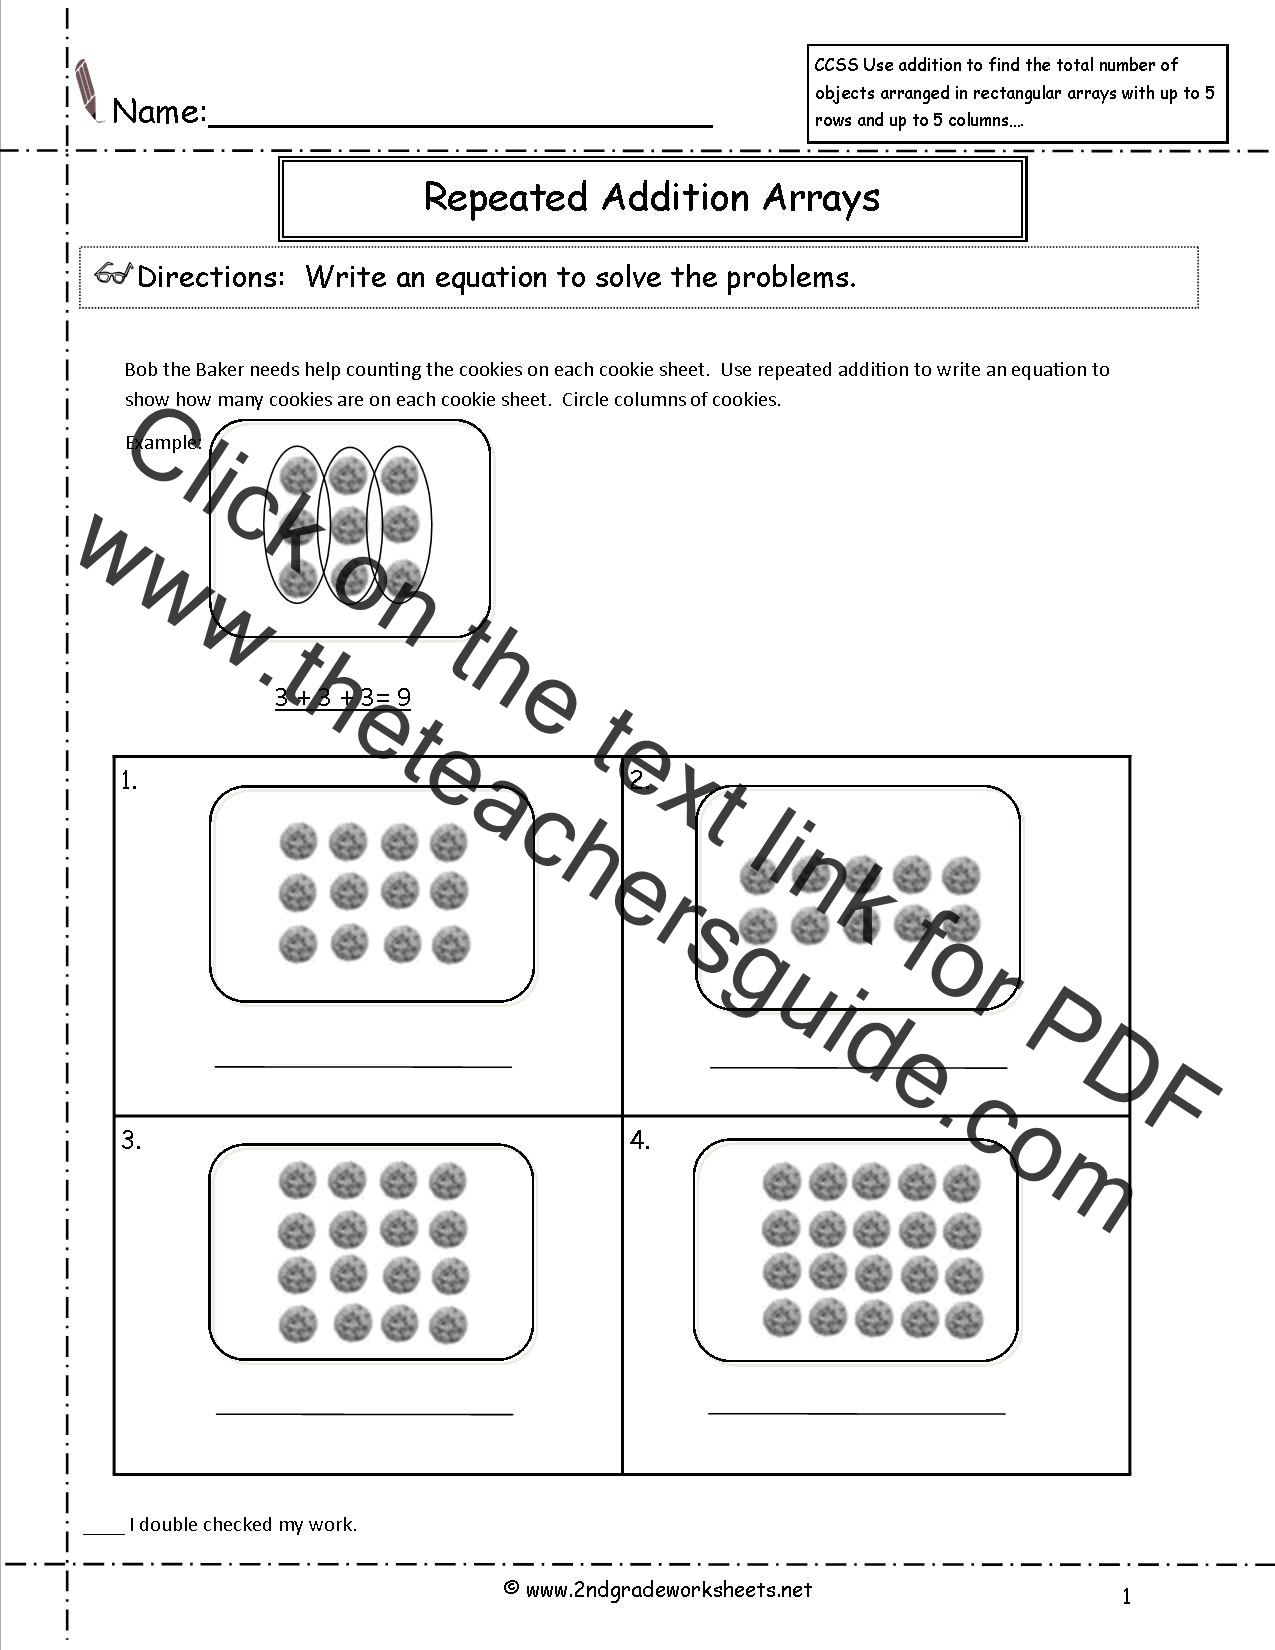 worksheet Addends Worksheets ccss 2 oa 4 worksheets repeated addition arrays